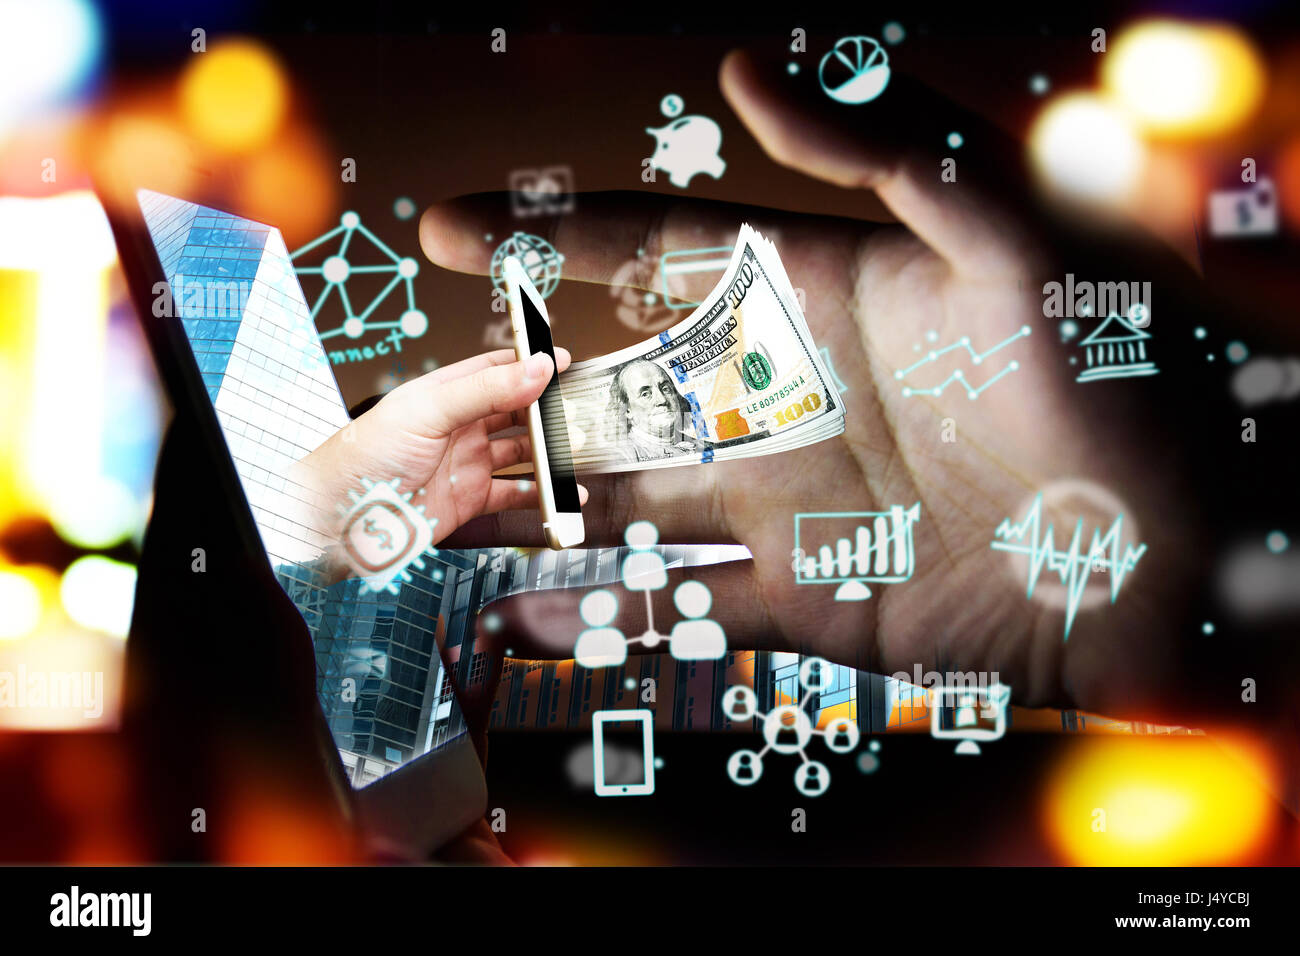 Fintech Investment Financial Technology Concept. P2P Payment concept image.Startup and crowd funding concept.Social - Stock Image